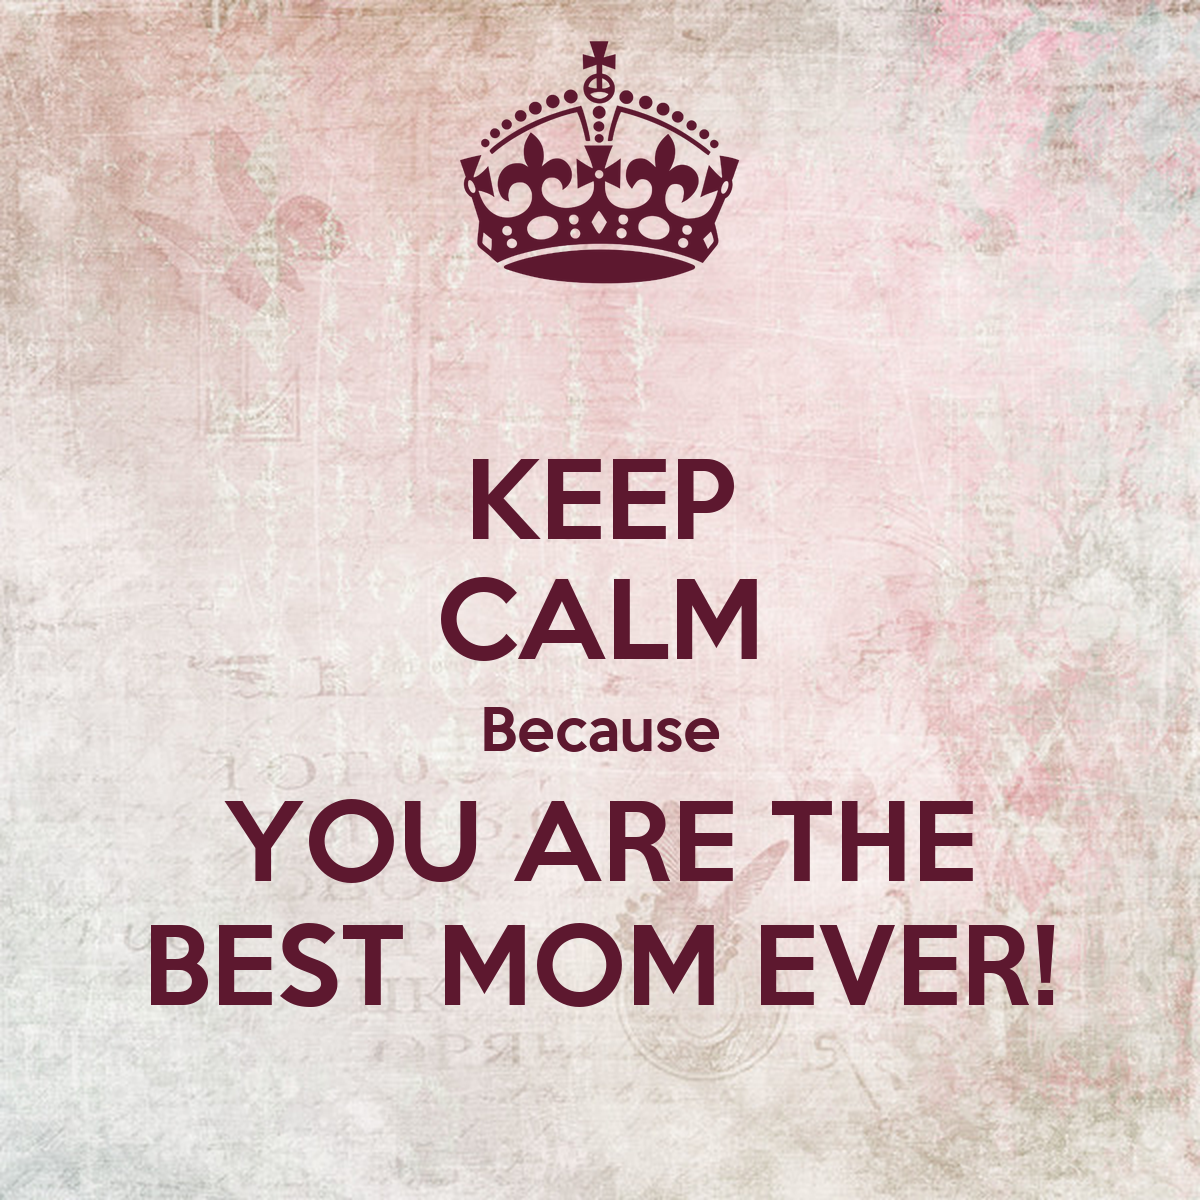 'KEEP CALM BECAUSE YOU'RE THE BEST MOM EVER' Poster | Keep ... |You Are The Best Momma Ever